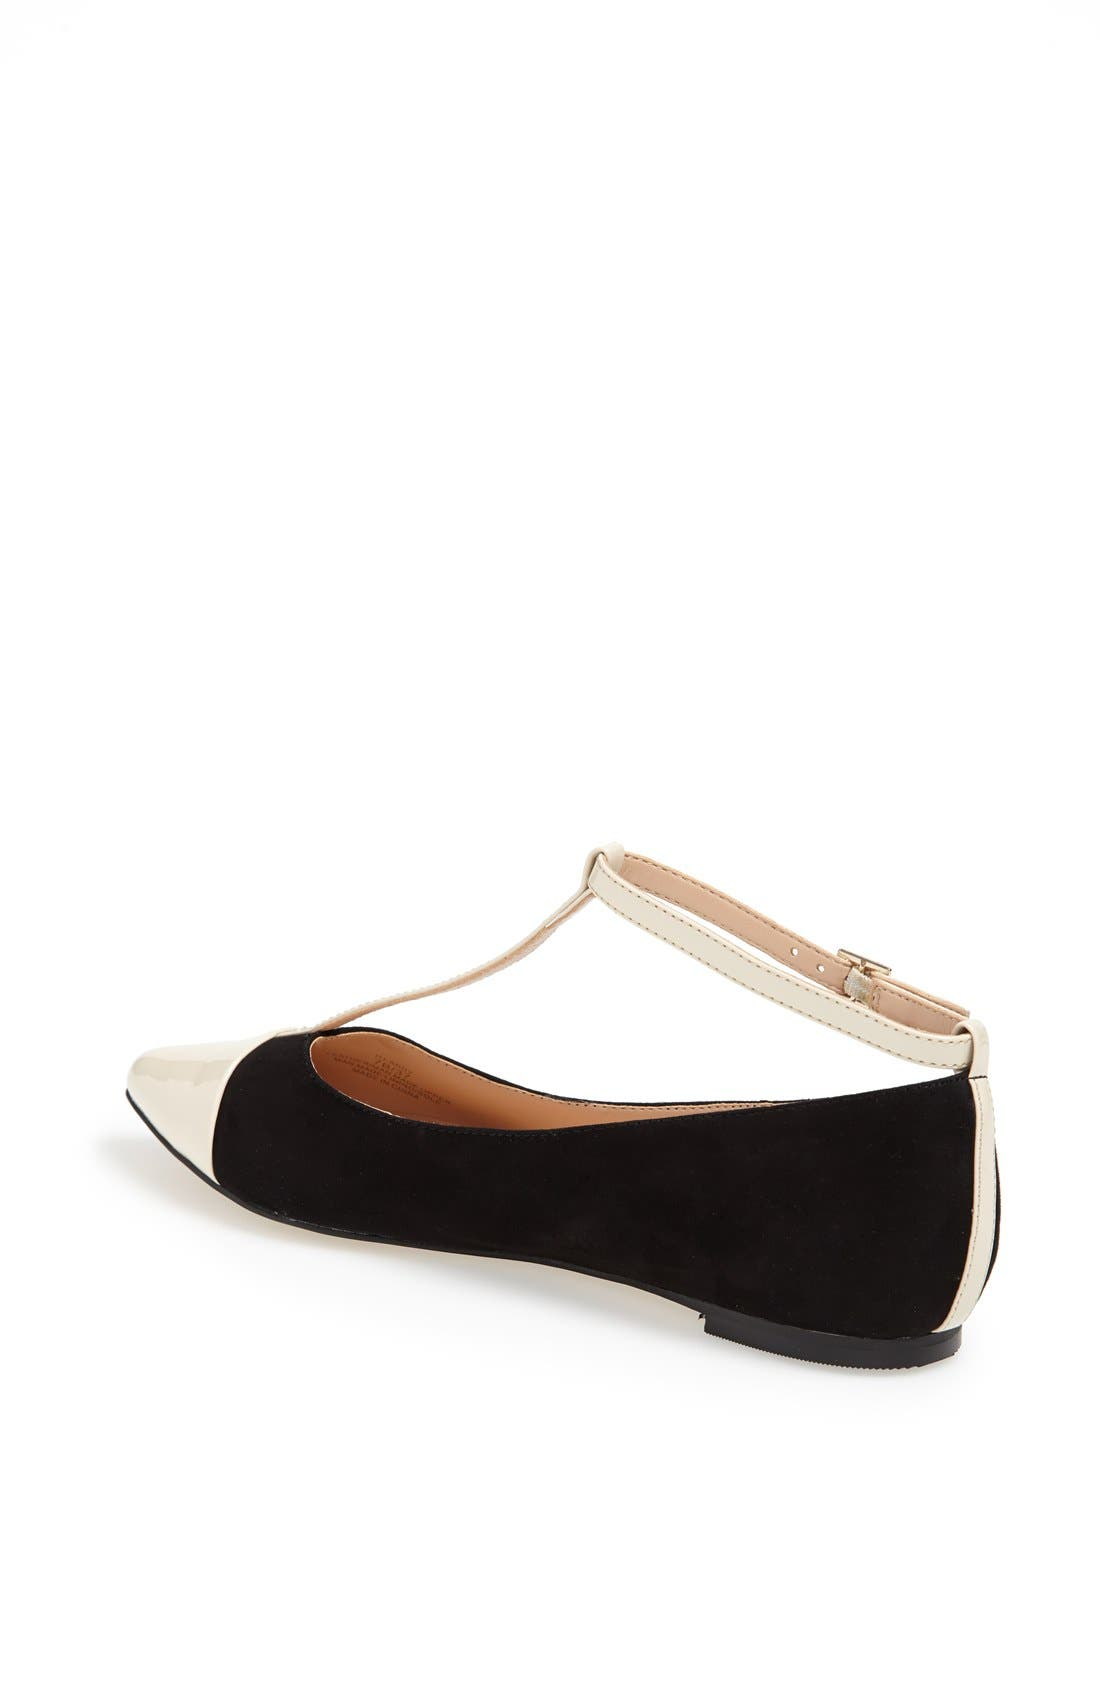 Julianne Hough for Sole Society 'Addy' Flat,                             Alternate thumbnail 6, color,                             001